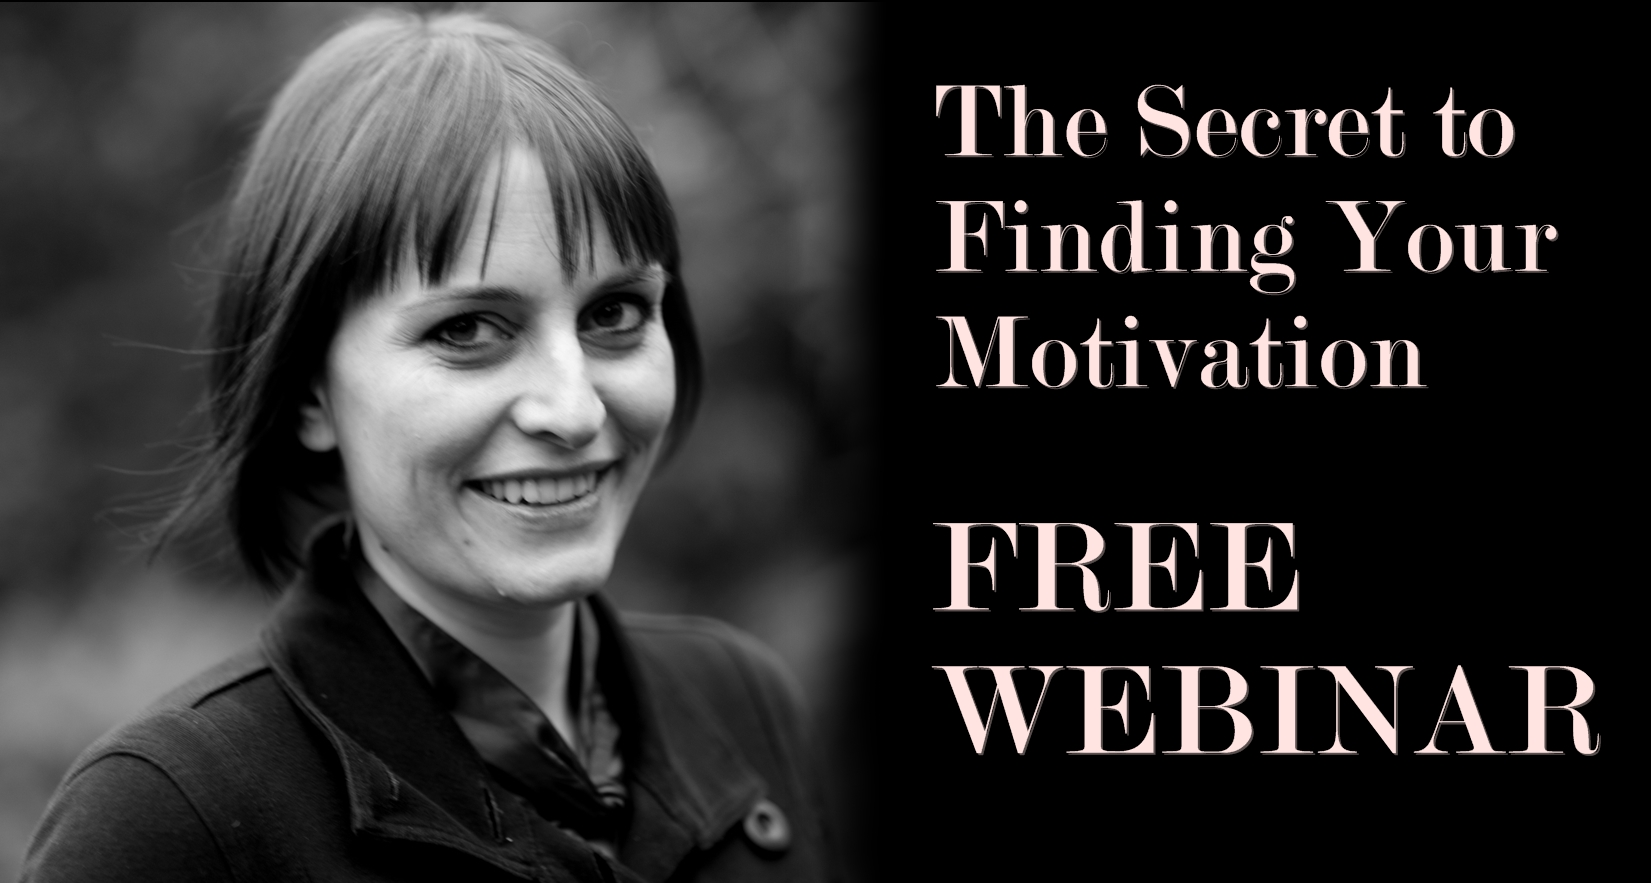 The Secret to Finding Your Motivation - Free Webinar